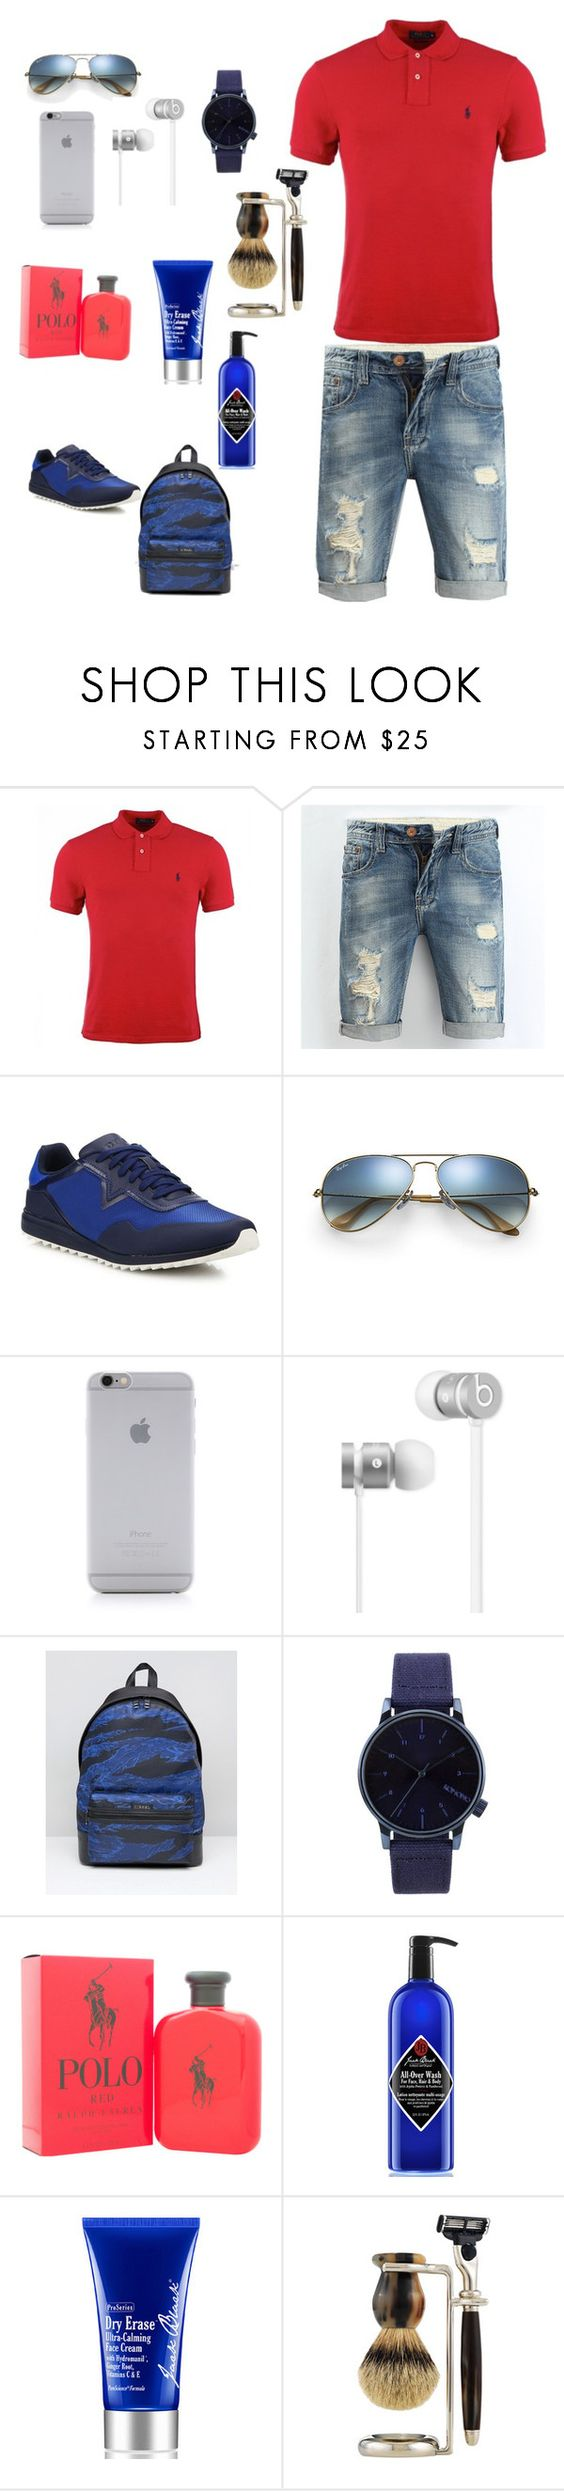 """sport❤️"" by mary-tshoy ❤ liked on Polyvore featuring Polo Ralph Lauren, Diesel, Ray-Ban, Native Union, Beats by Dr. Dre, Komono, Ralph Lauren, Jack Black, The Art of Shaving and men's fashion"